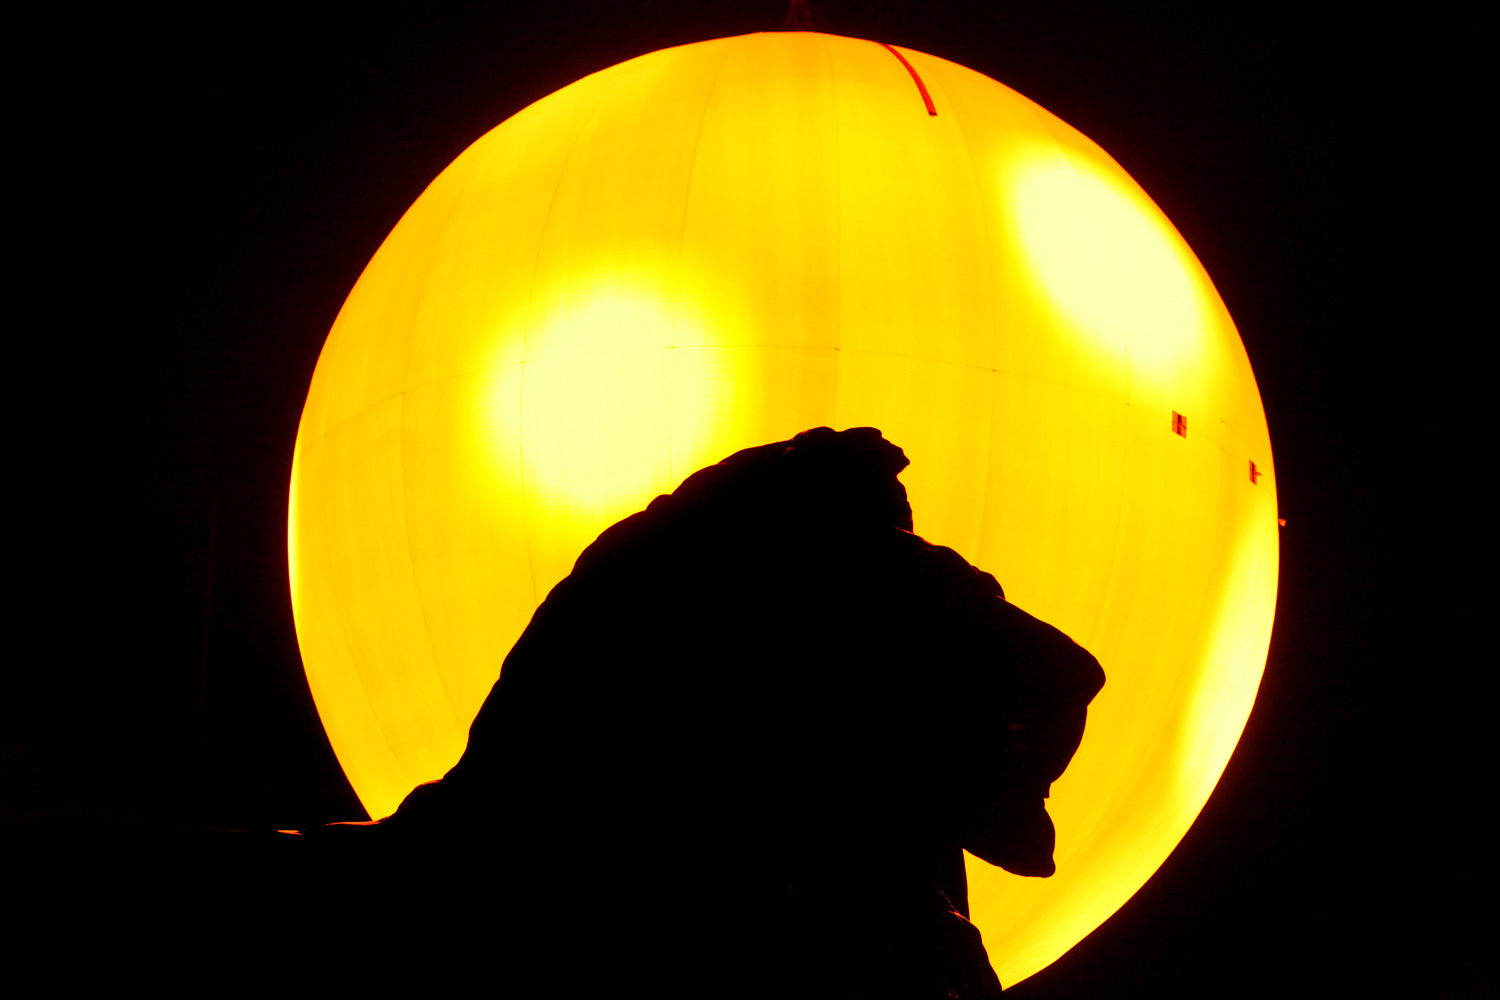 January 23, 2012. A bronze lion at the base of Nelson's Column is silhouetted against the backdrop of a 'fake sun' in London's Trafalgar Square. The luminous orb, which took six months to build, weighs over 2,500 kgs and produces the equivalent light to 60,000 light bulbs. The artwork was designed by the art collective Greyworld and is in Trafalgar Square for one day only.